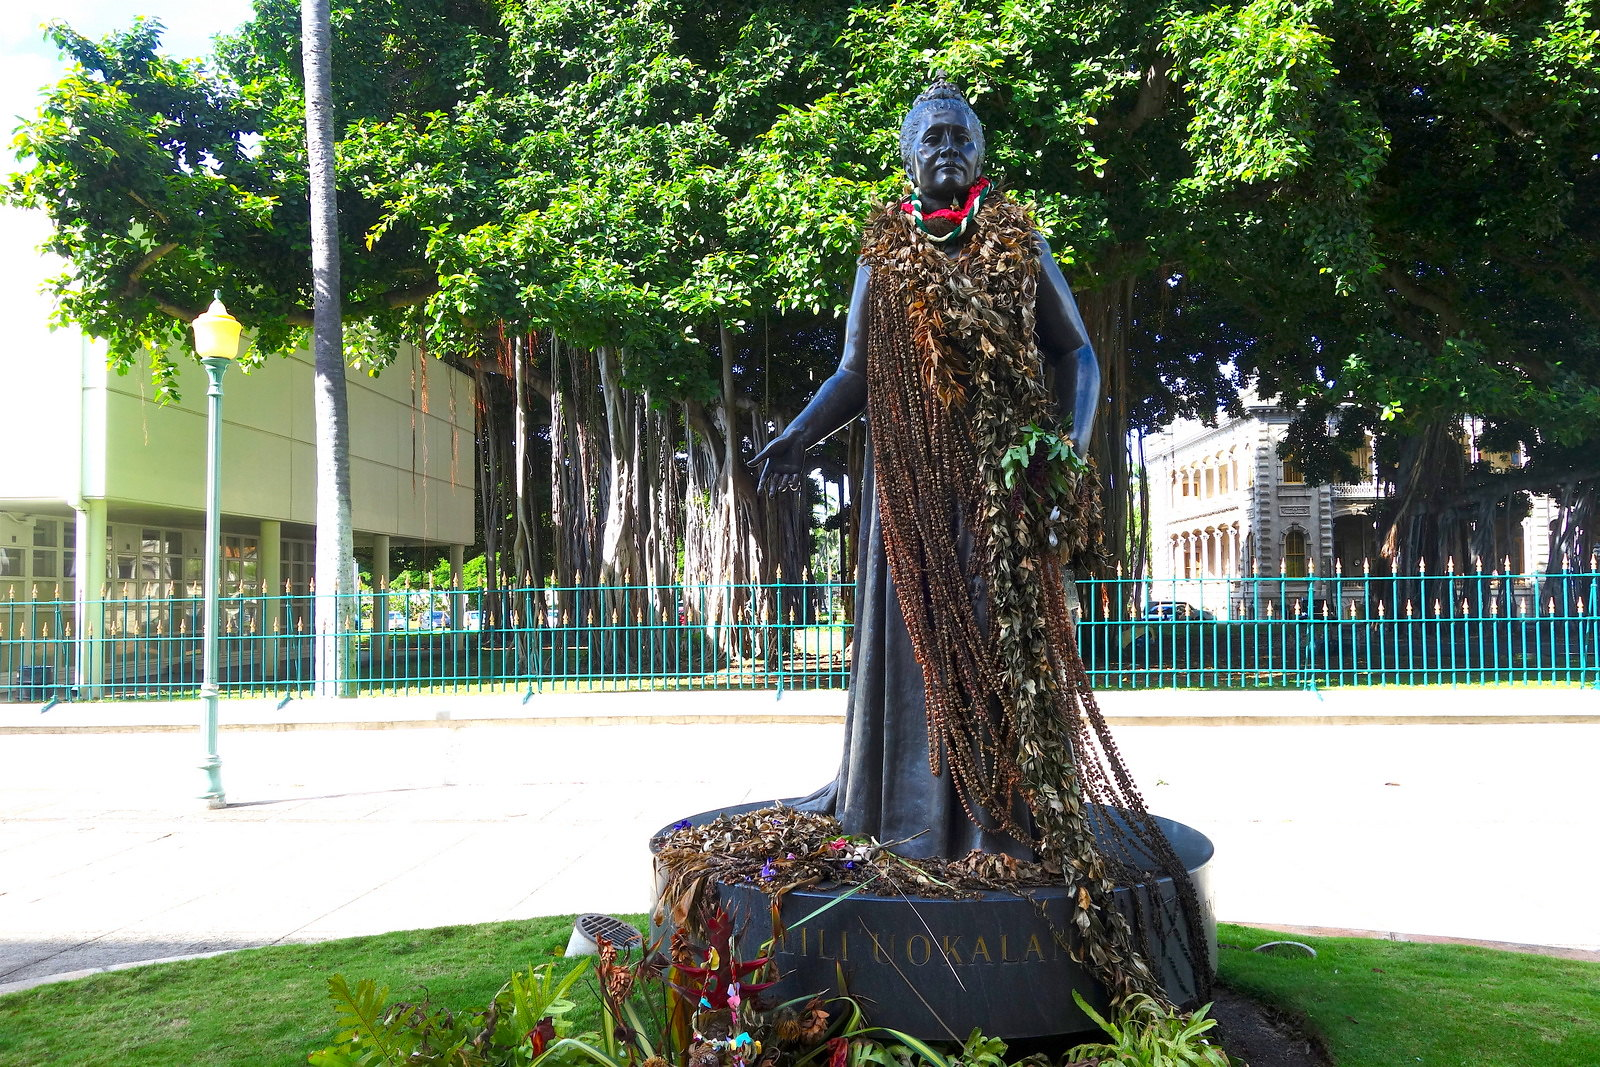 Queen Lili'uokalani, the last Hawaiian monarch. From Digging Deeper into Hawaiian History on the Hawai'i Monarchs Tour